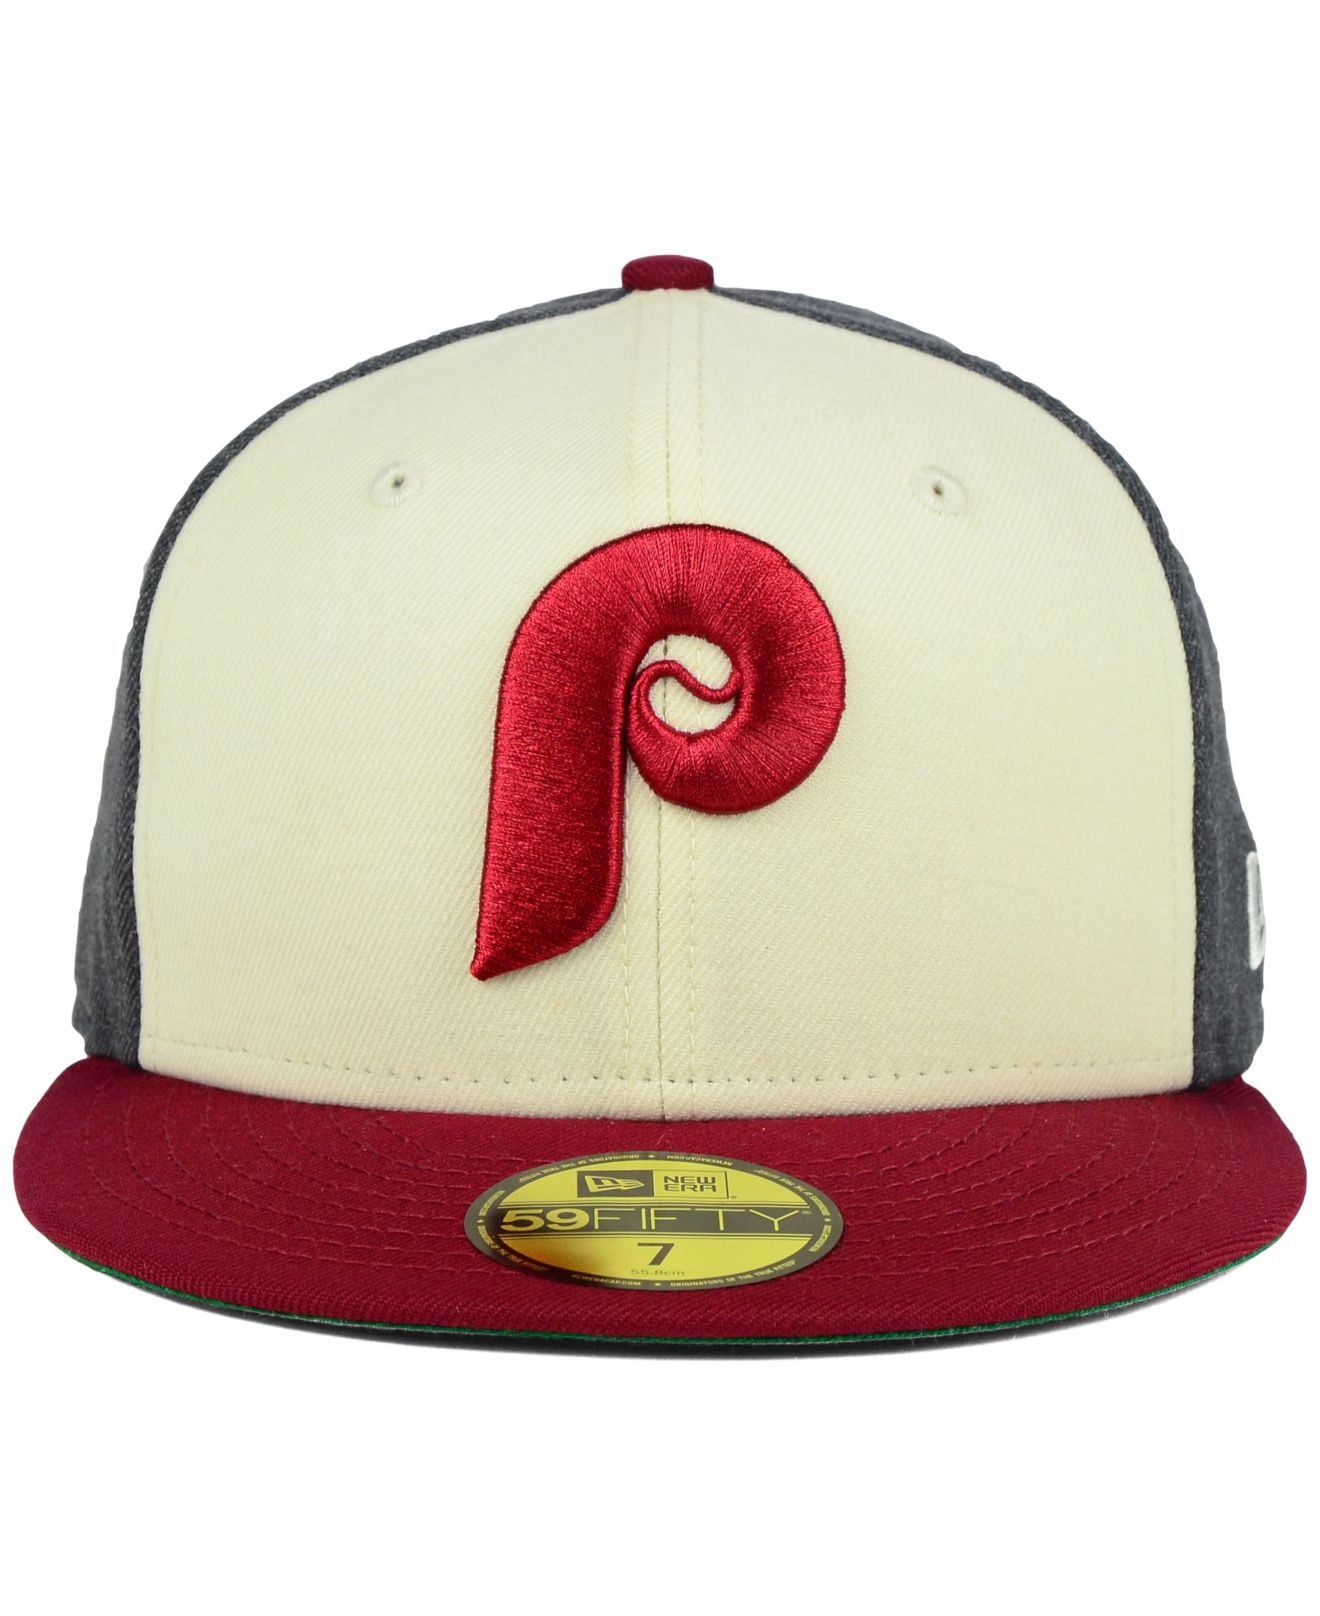 best service 8bf16 f1a22 ... greece lyst ktz philadelphia phillies classic coop 59fifty cap in red  for men b7578 31709